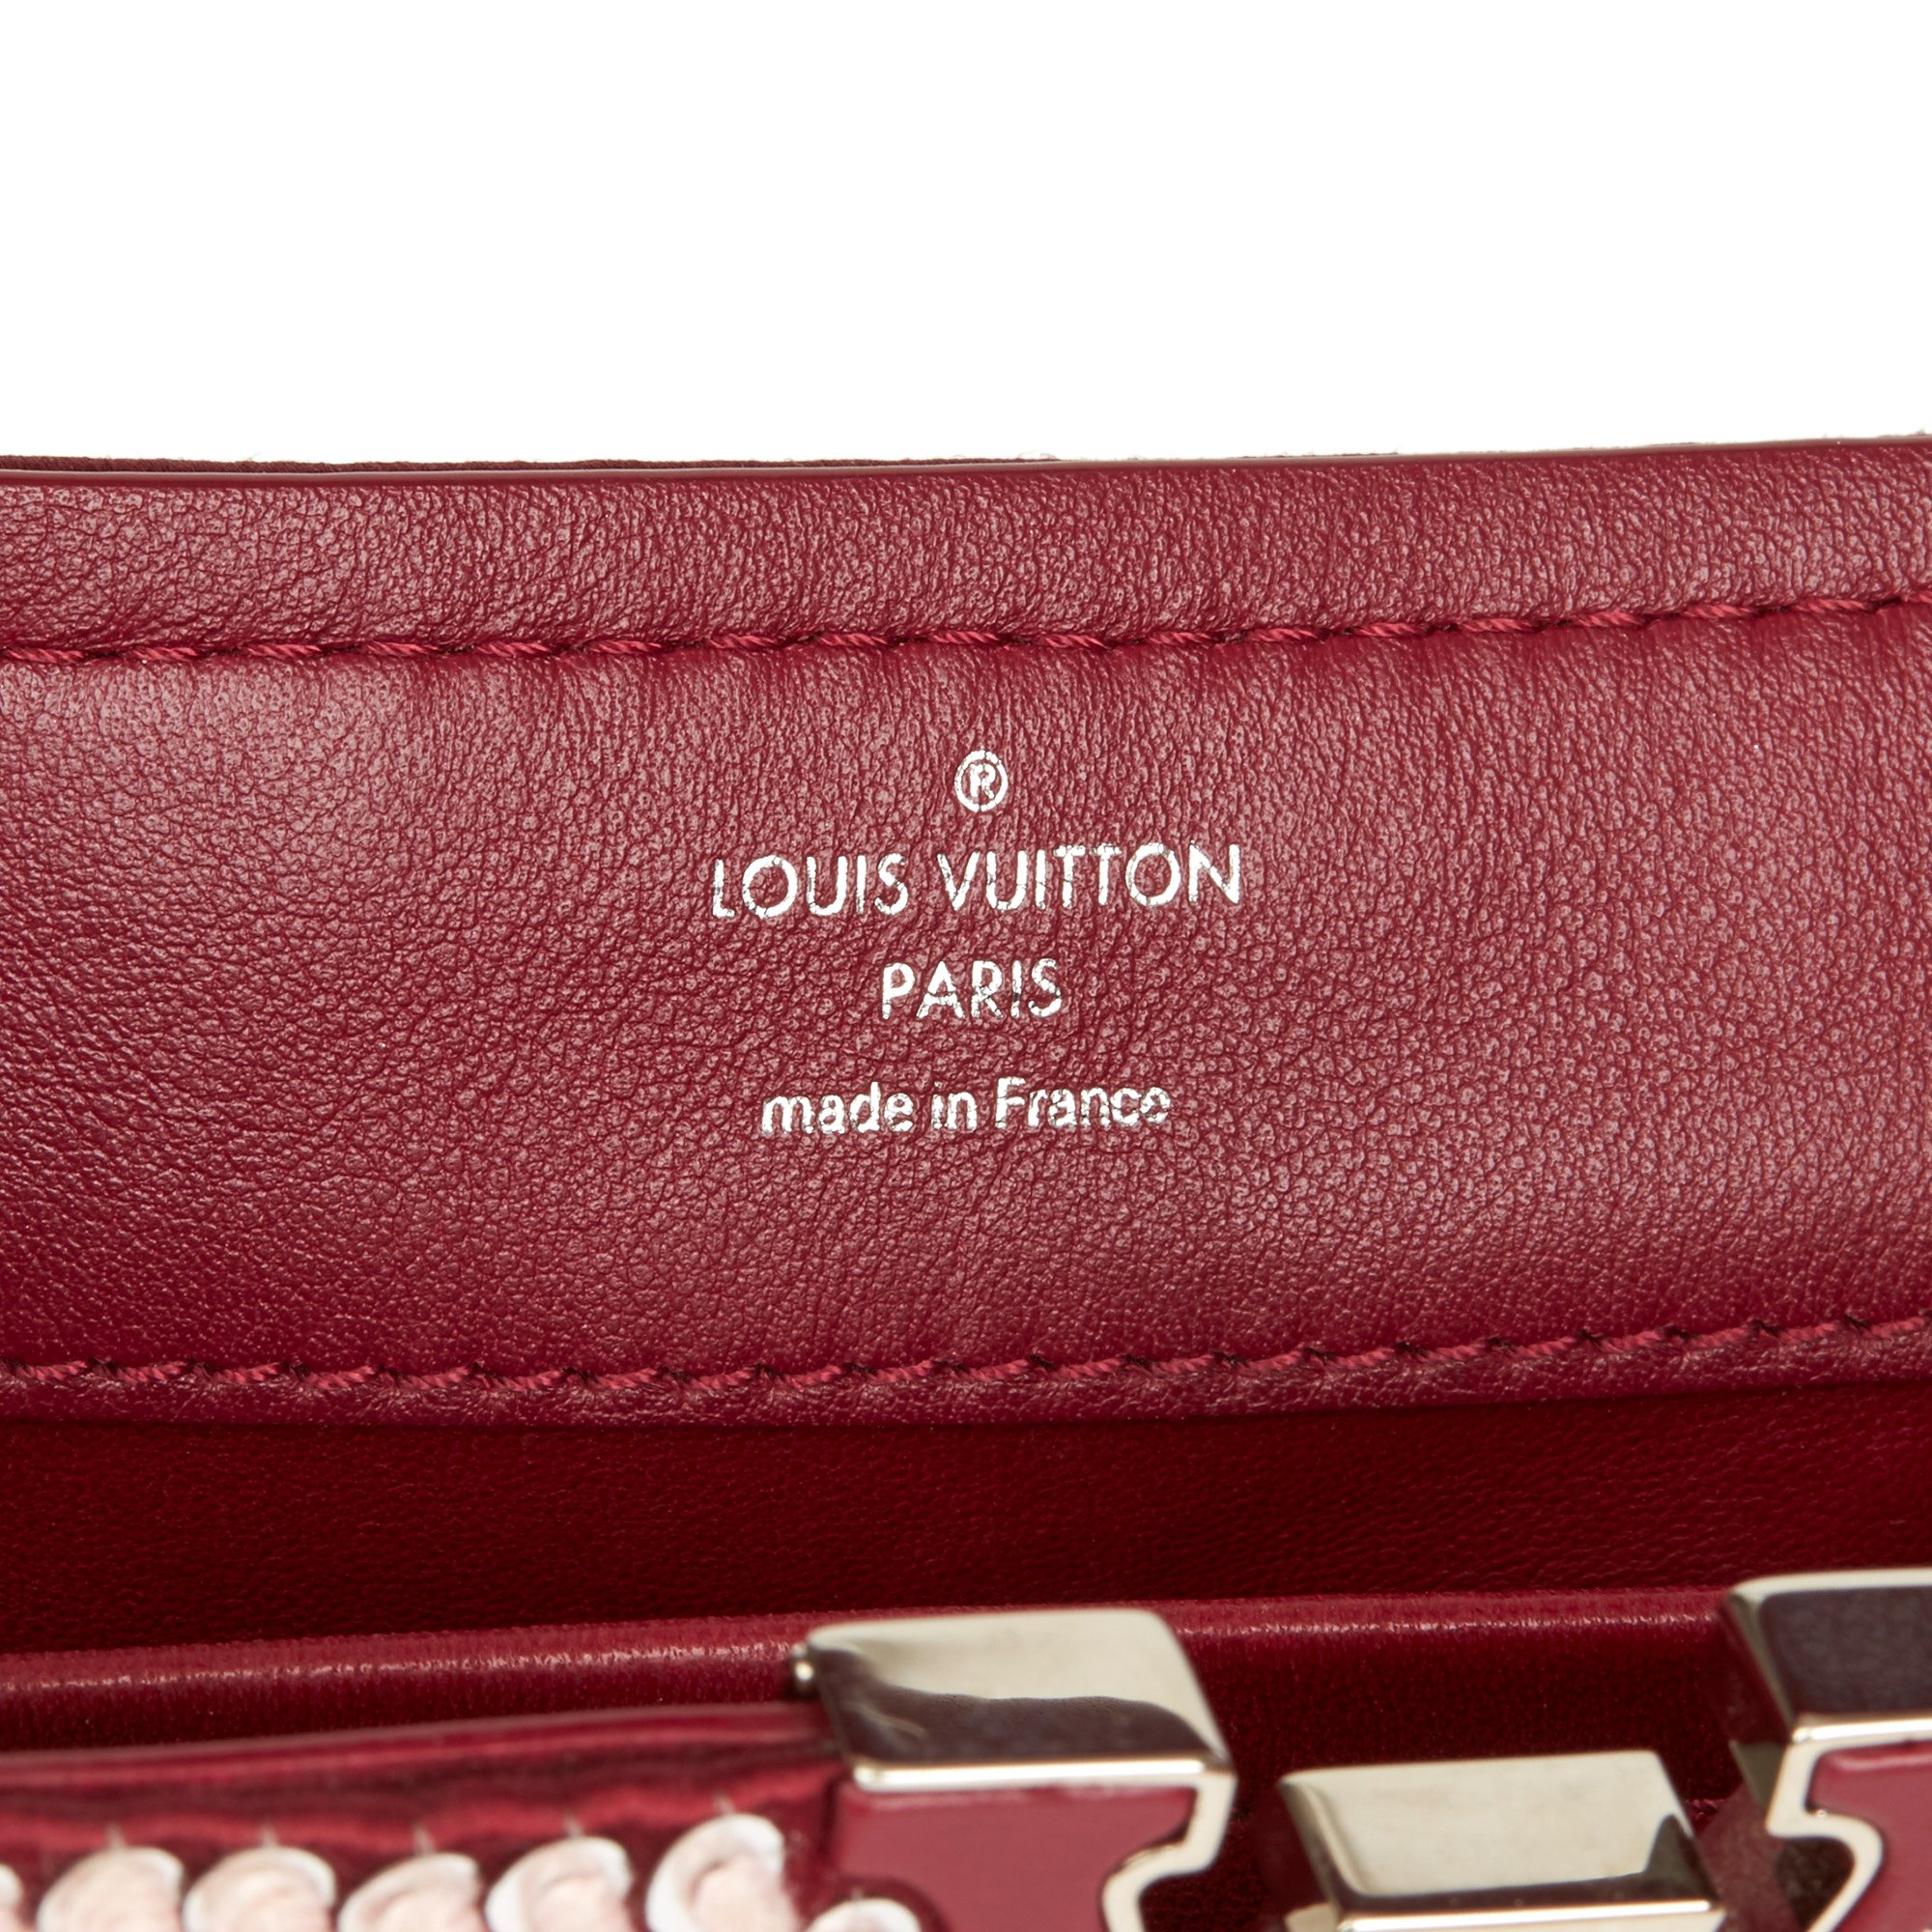 Louis Vuitton Burgundy Sequin Embellished Smooth Calfskin Leather Mini Capucines